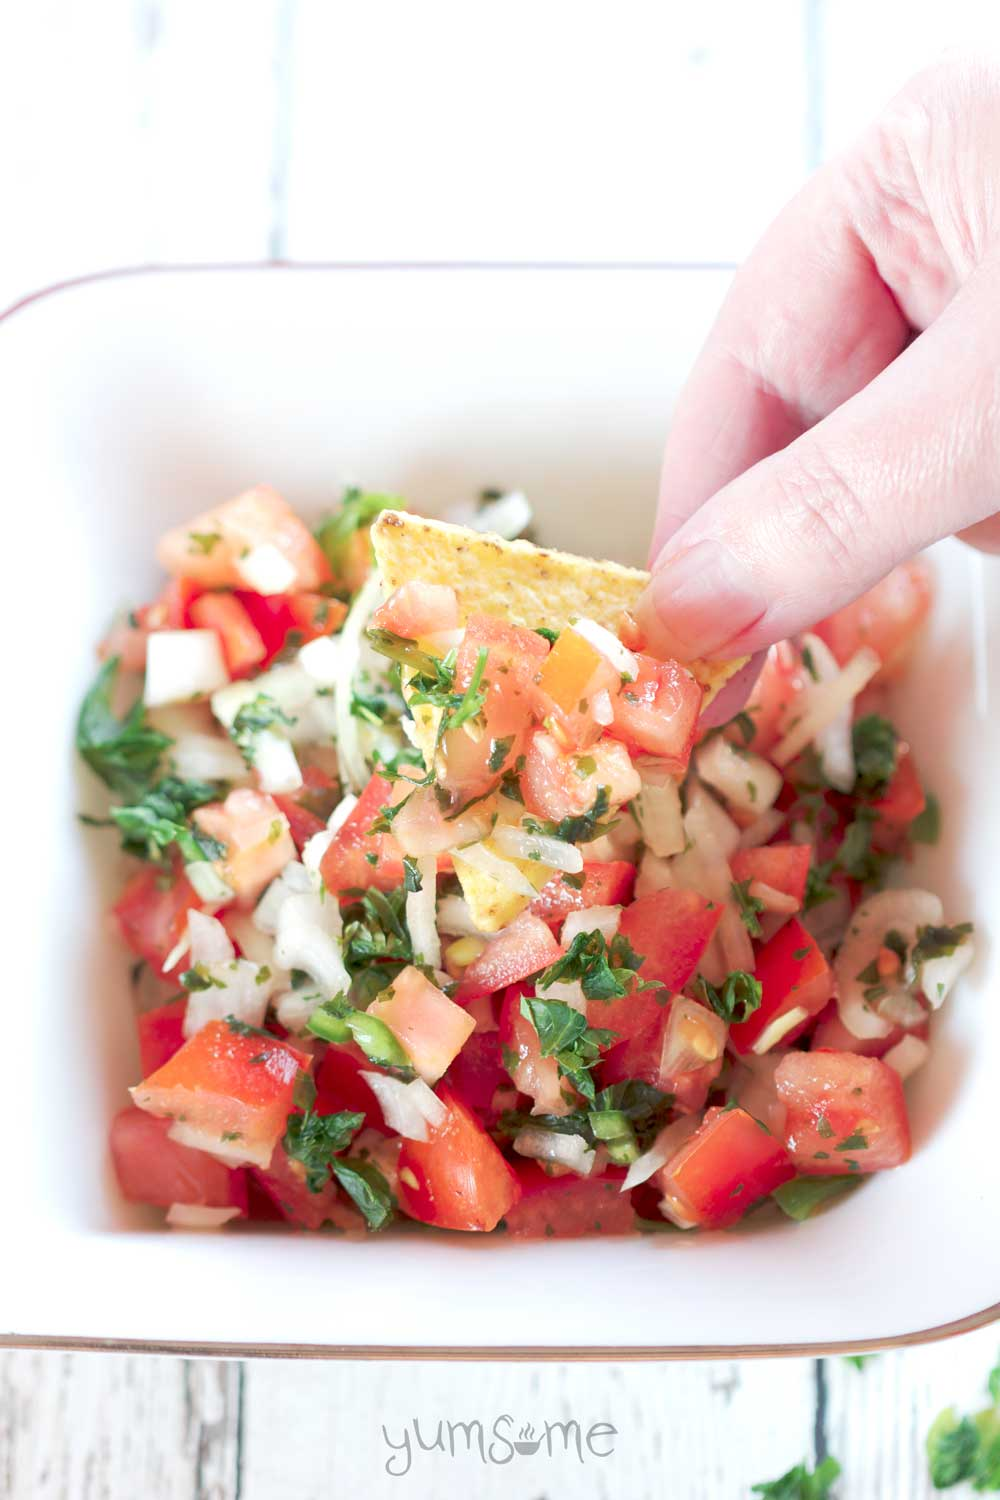 how to cut roma tomatoes for pico de gallo